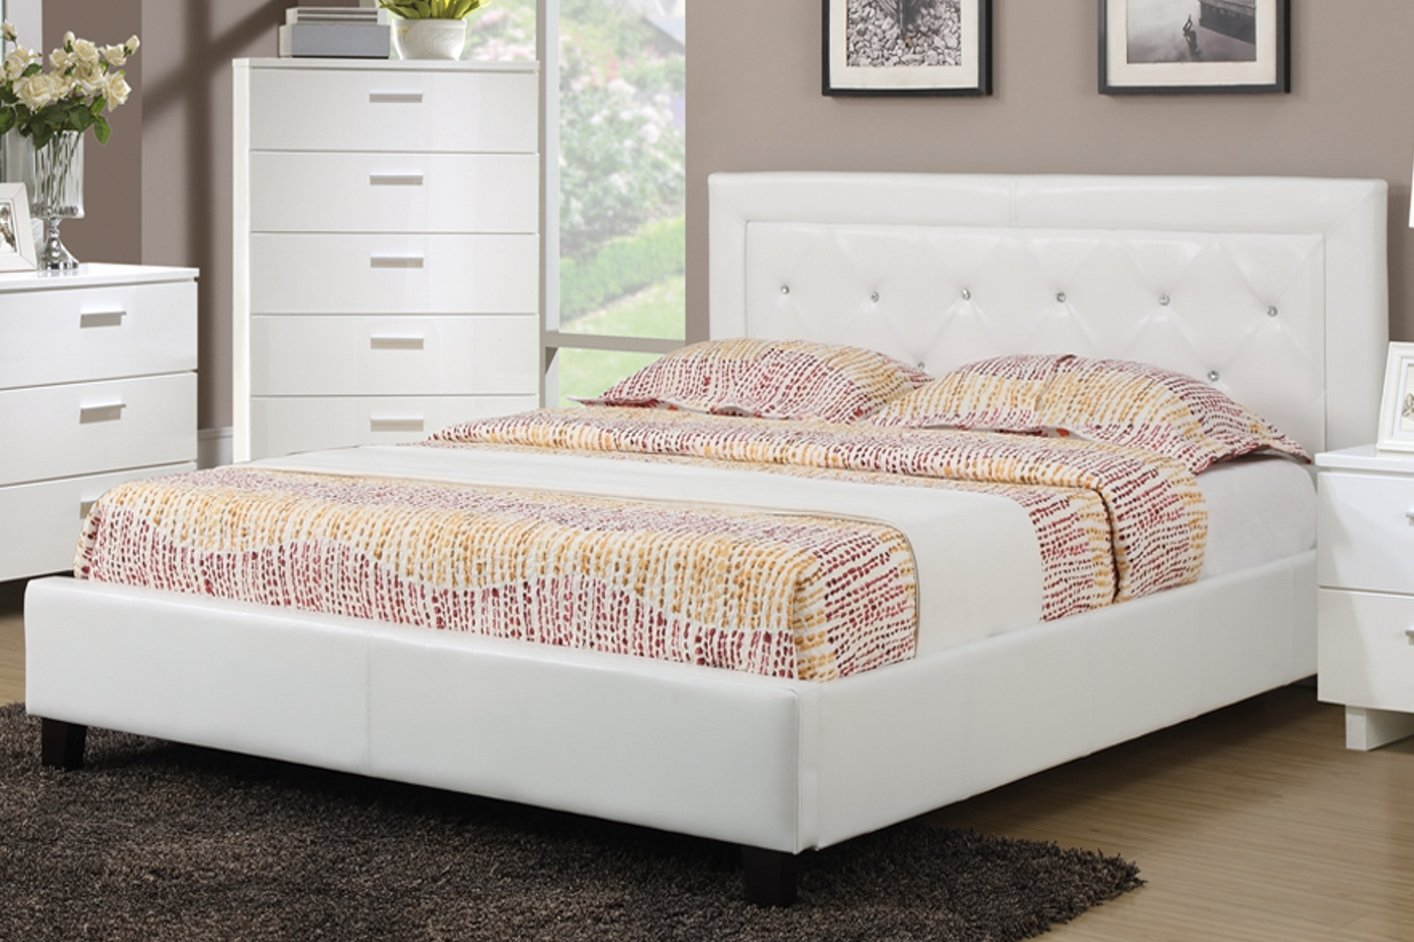 how much is a full size bed california king bed 2019. Black Bedroom Furniture Sets. Home Design Ideas